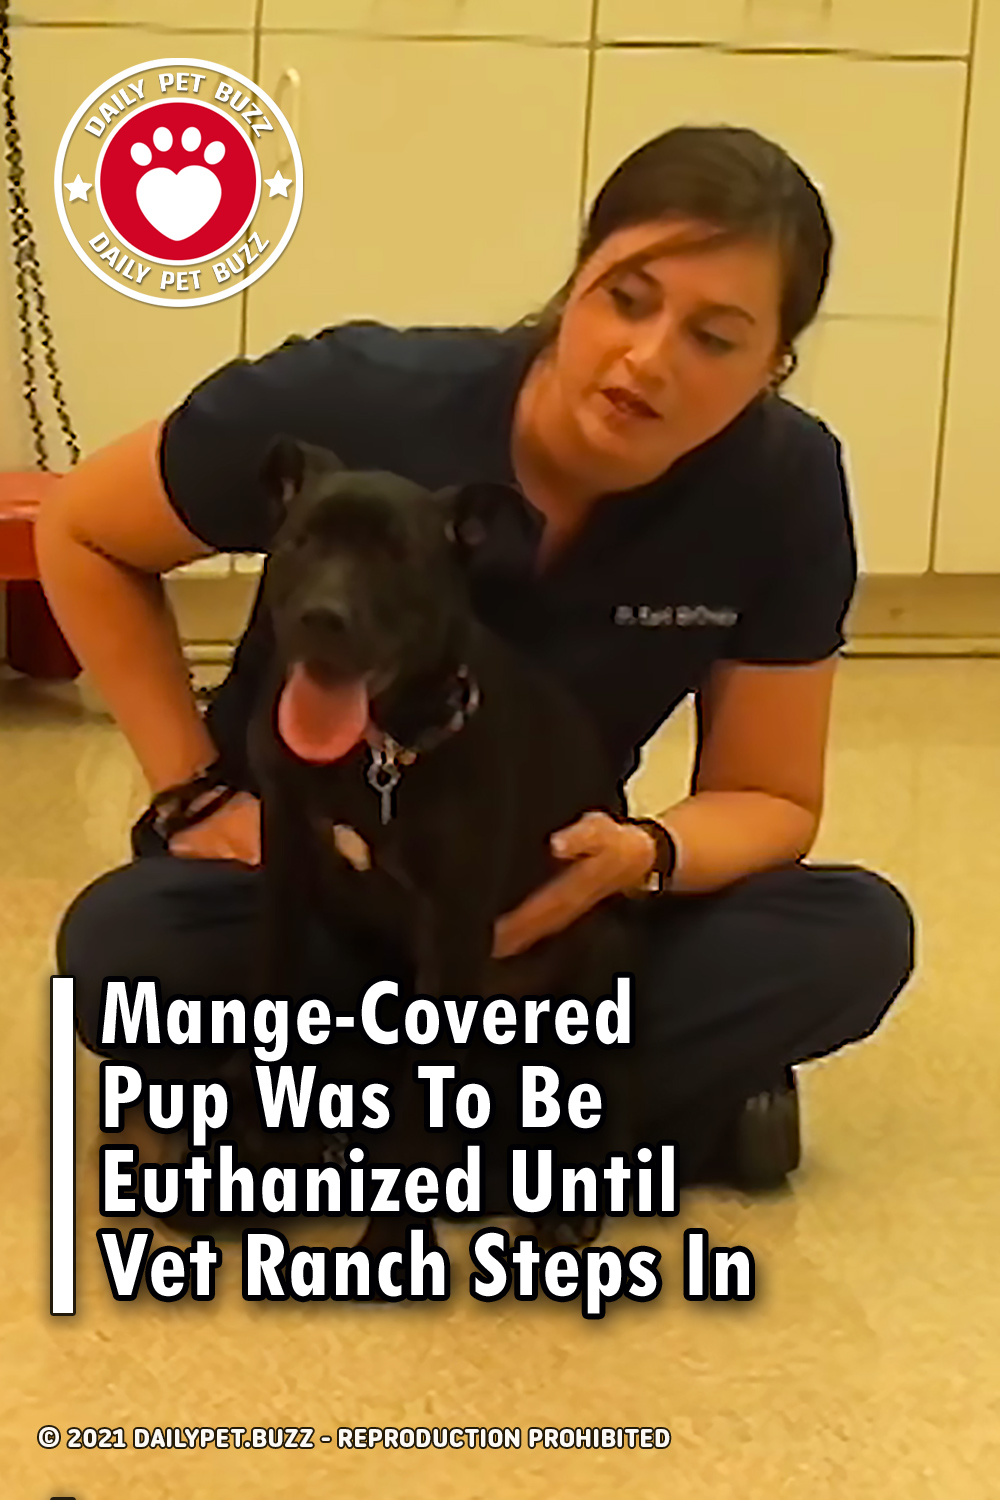 Mange-Covered Pup Was To Be Euthanized Until Vet Ranch Steps In